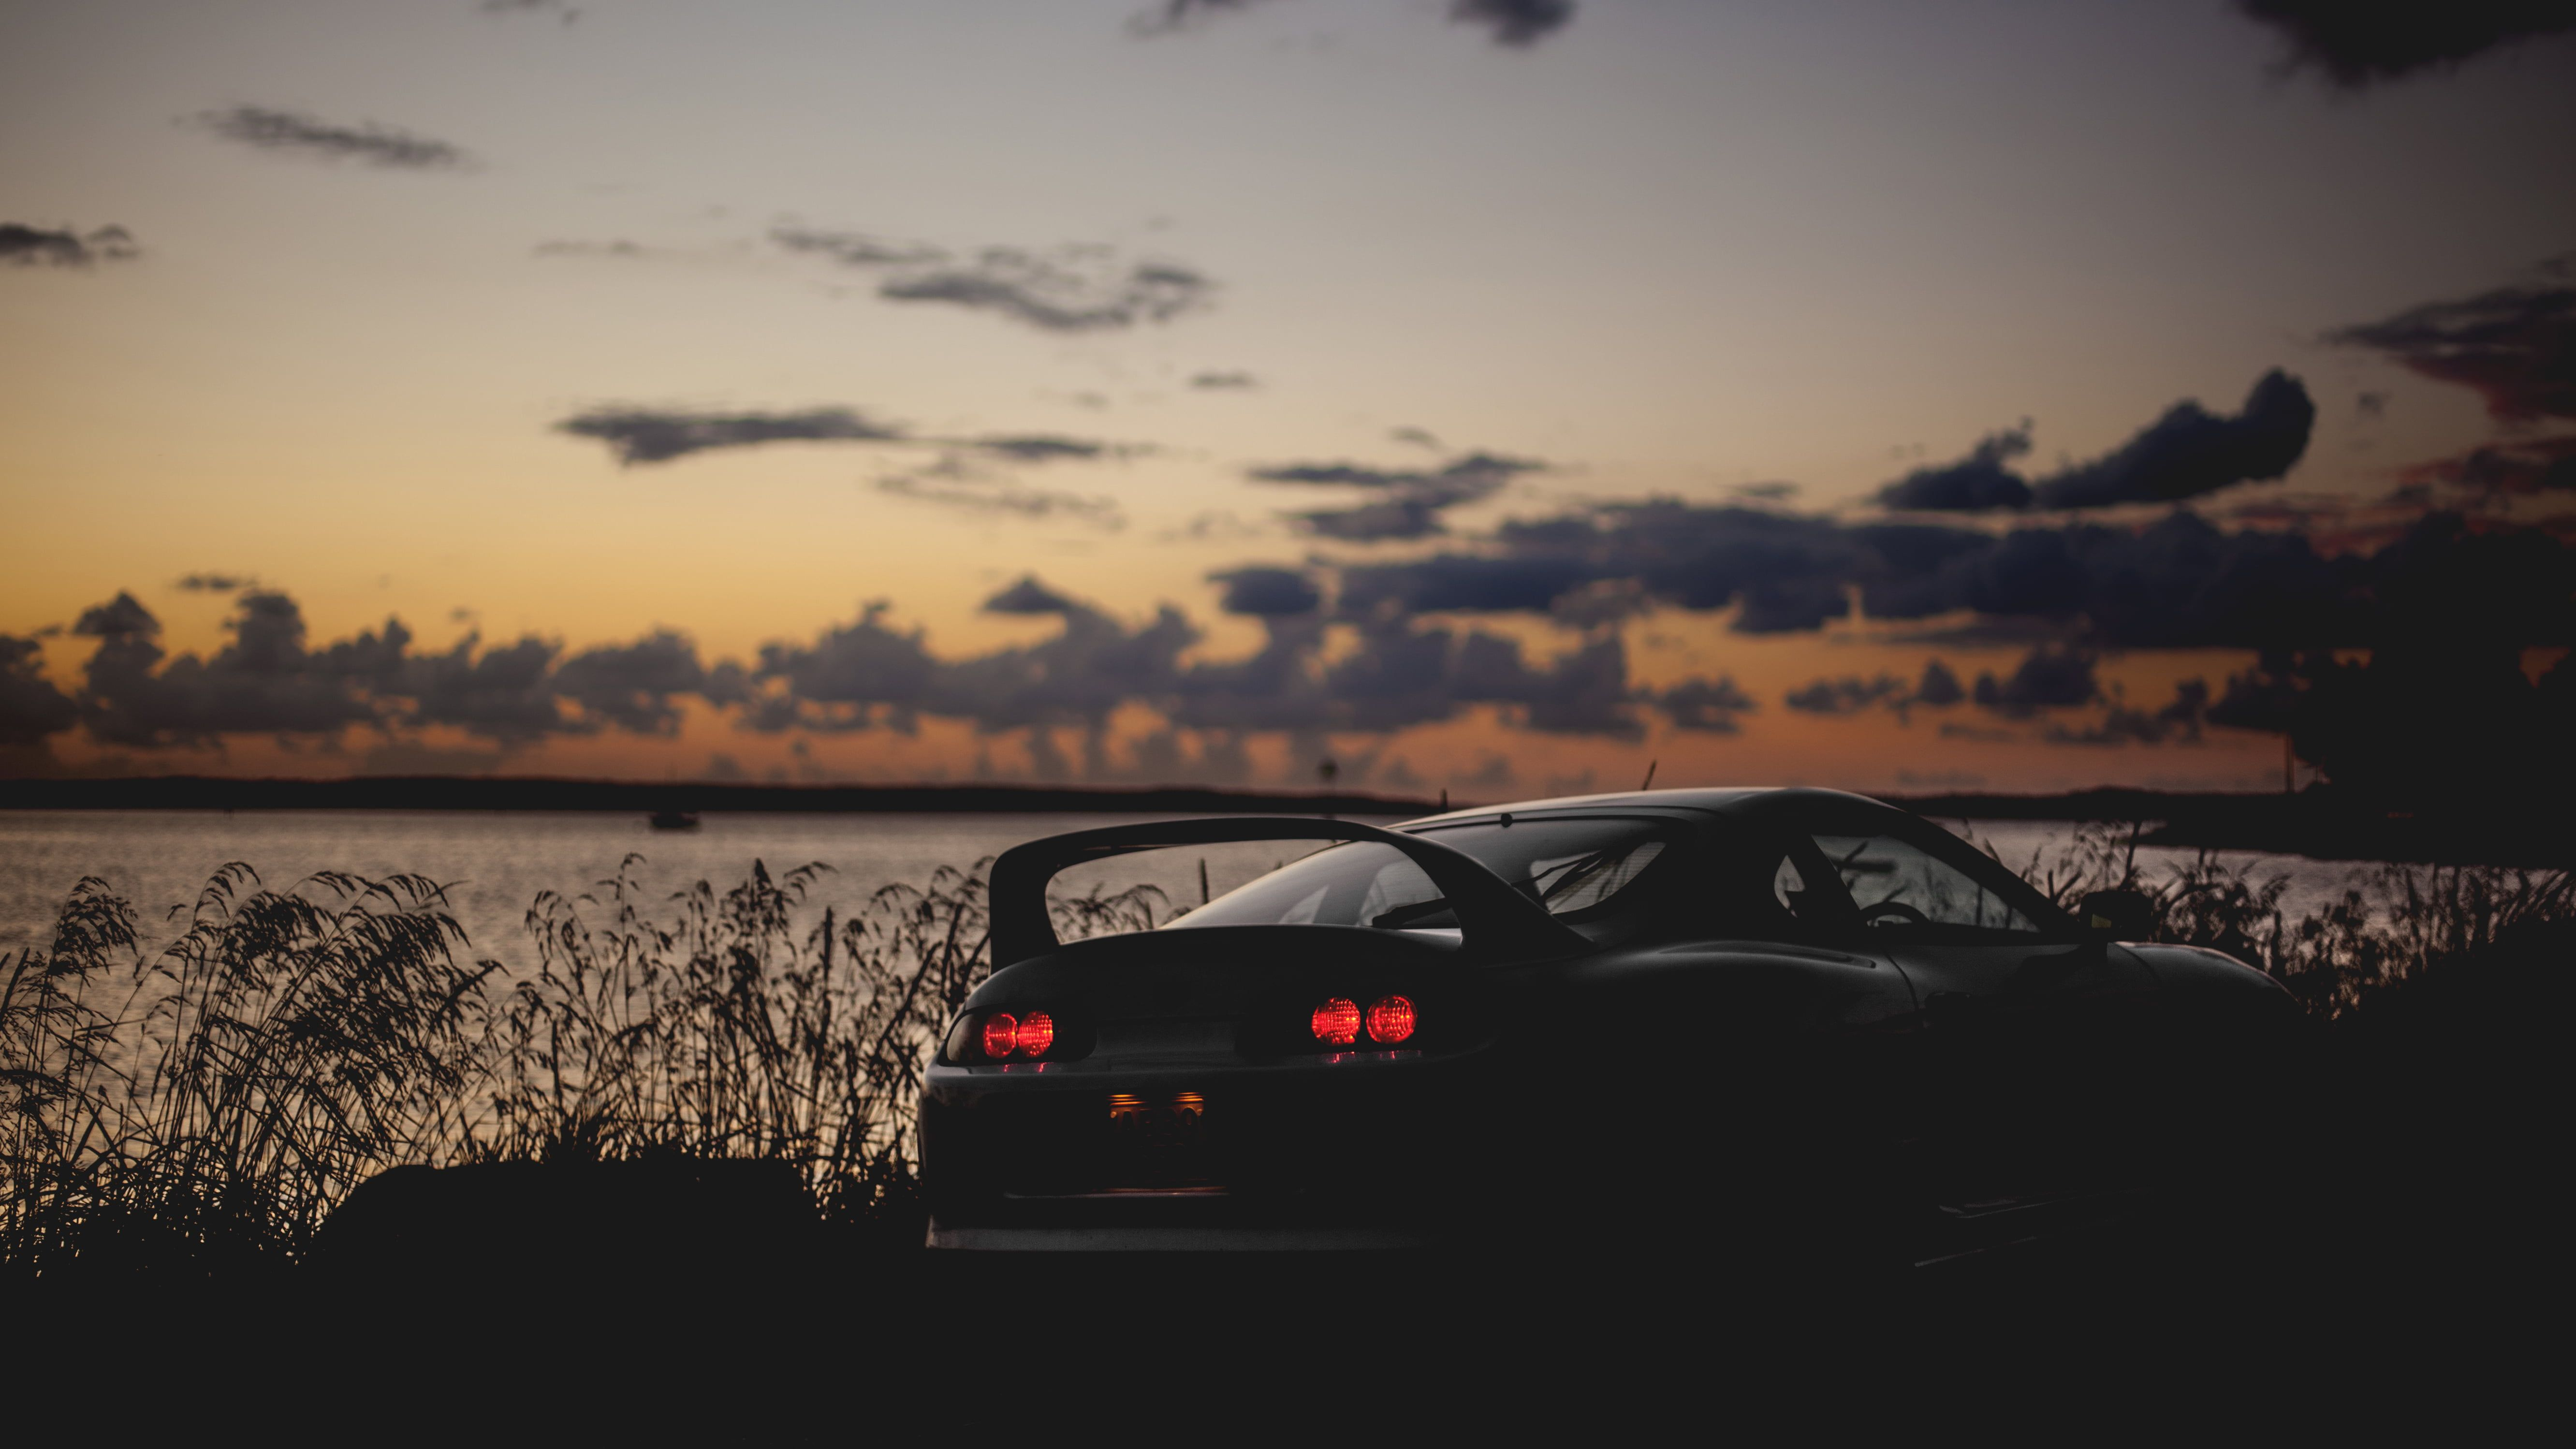 Jdm 4k pc wallpaper / jdm car wallpaper 4k pc car mania / search free 4k wallpapers on zedge and personalize your phone to suit you. Black Coupe Toyota Supra Mkiv Jdm Japanese Cars 2jz 2jz Gte Trd Car Rhd Toyota Supra 5k Wallpaper Hdwal Toyota Supra Toyota Supra Mk4 Jdm Wallpaper